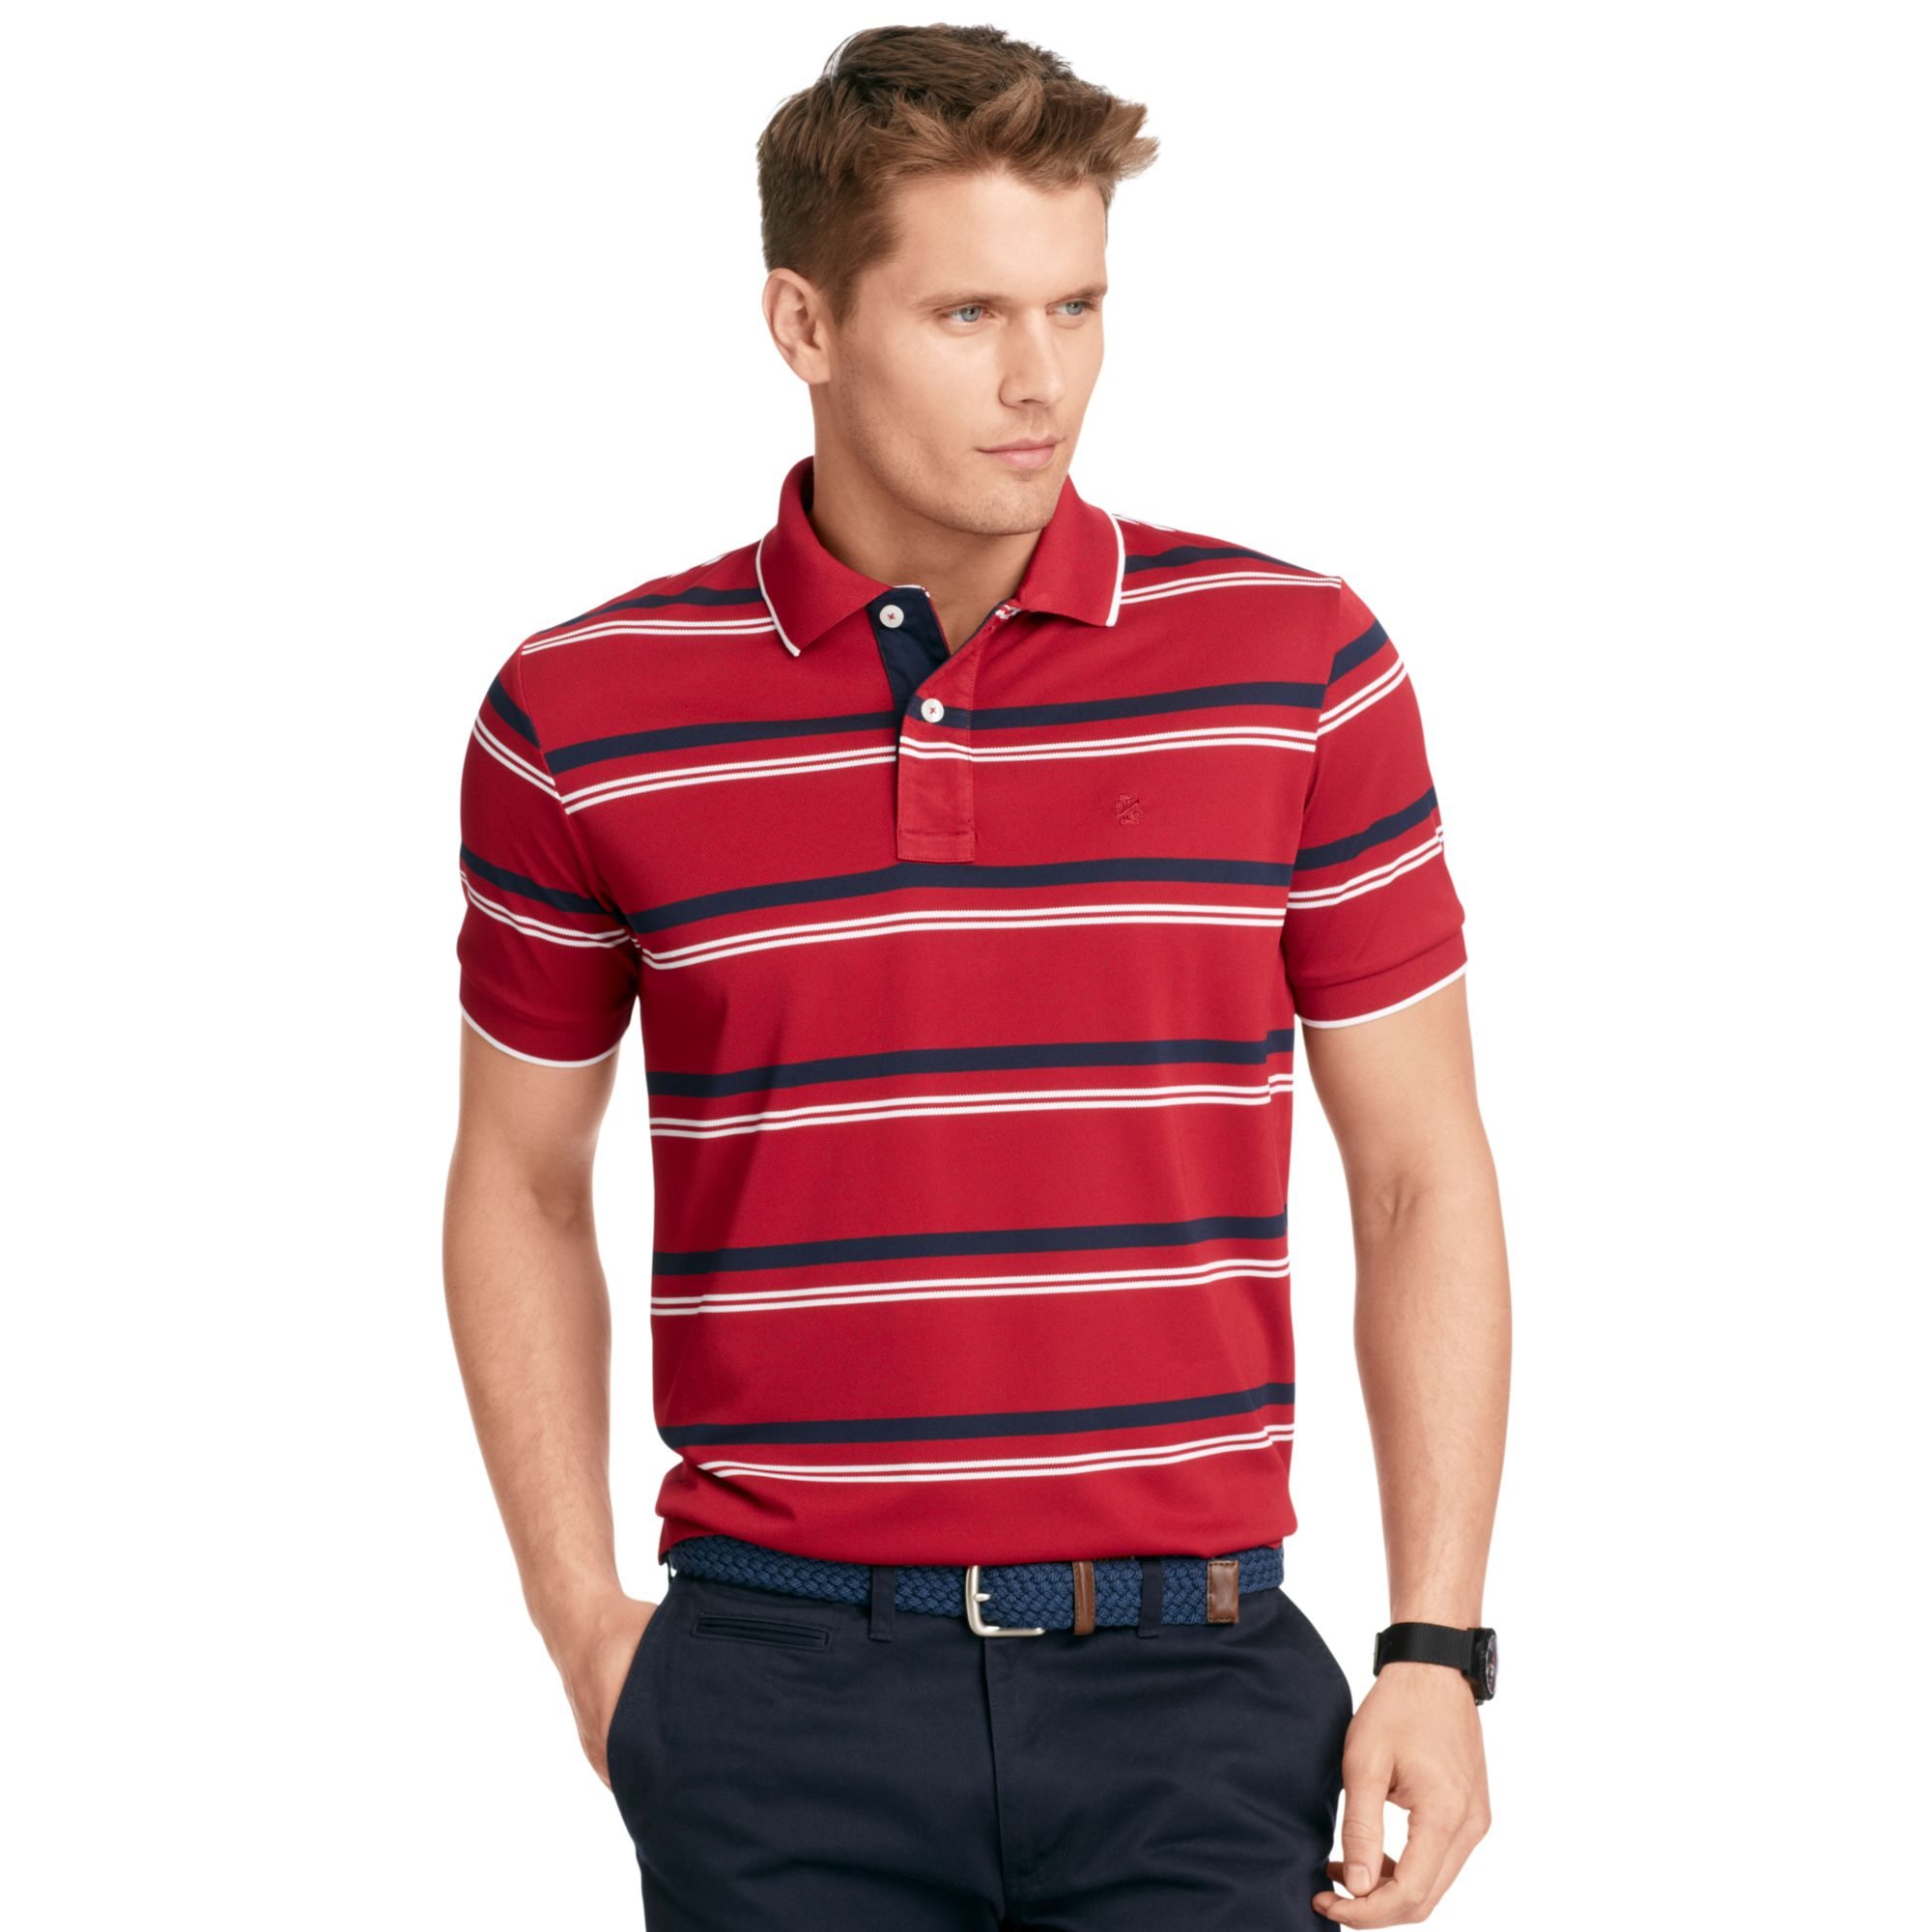 Izod Izod Big And Tall Shirt Shortsleeve Dual Striped